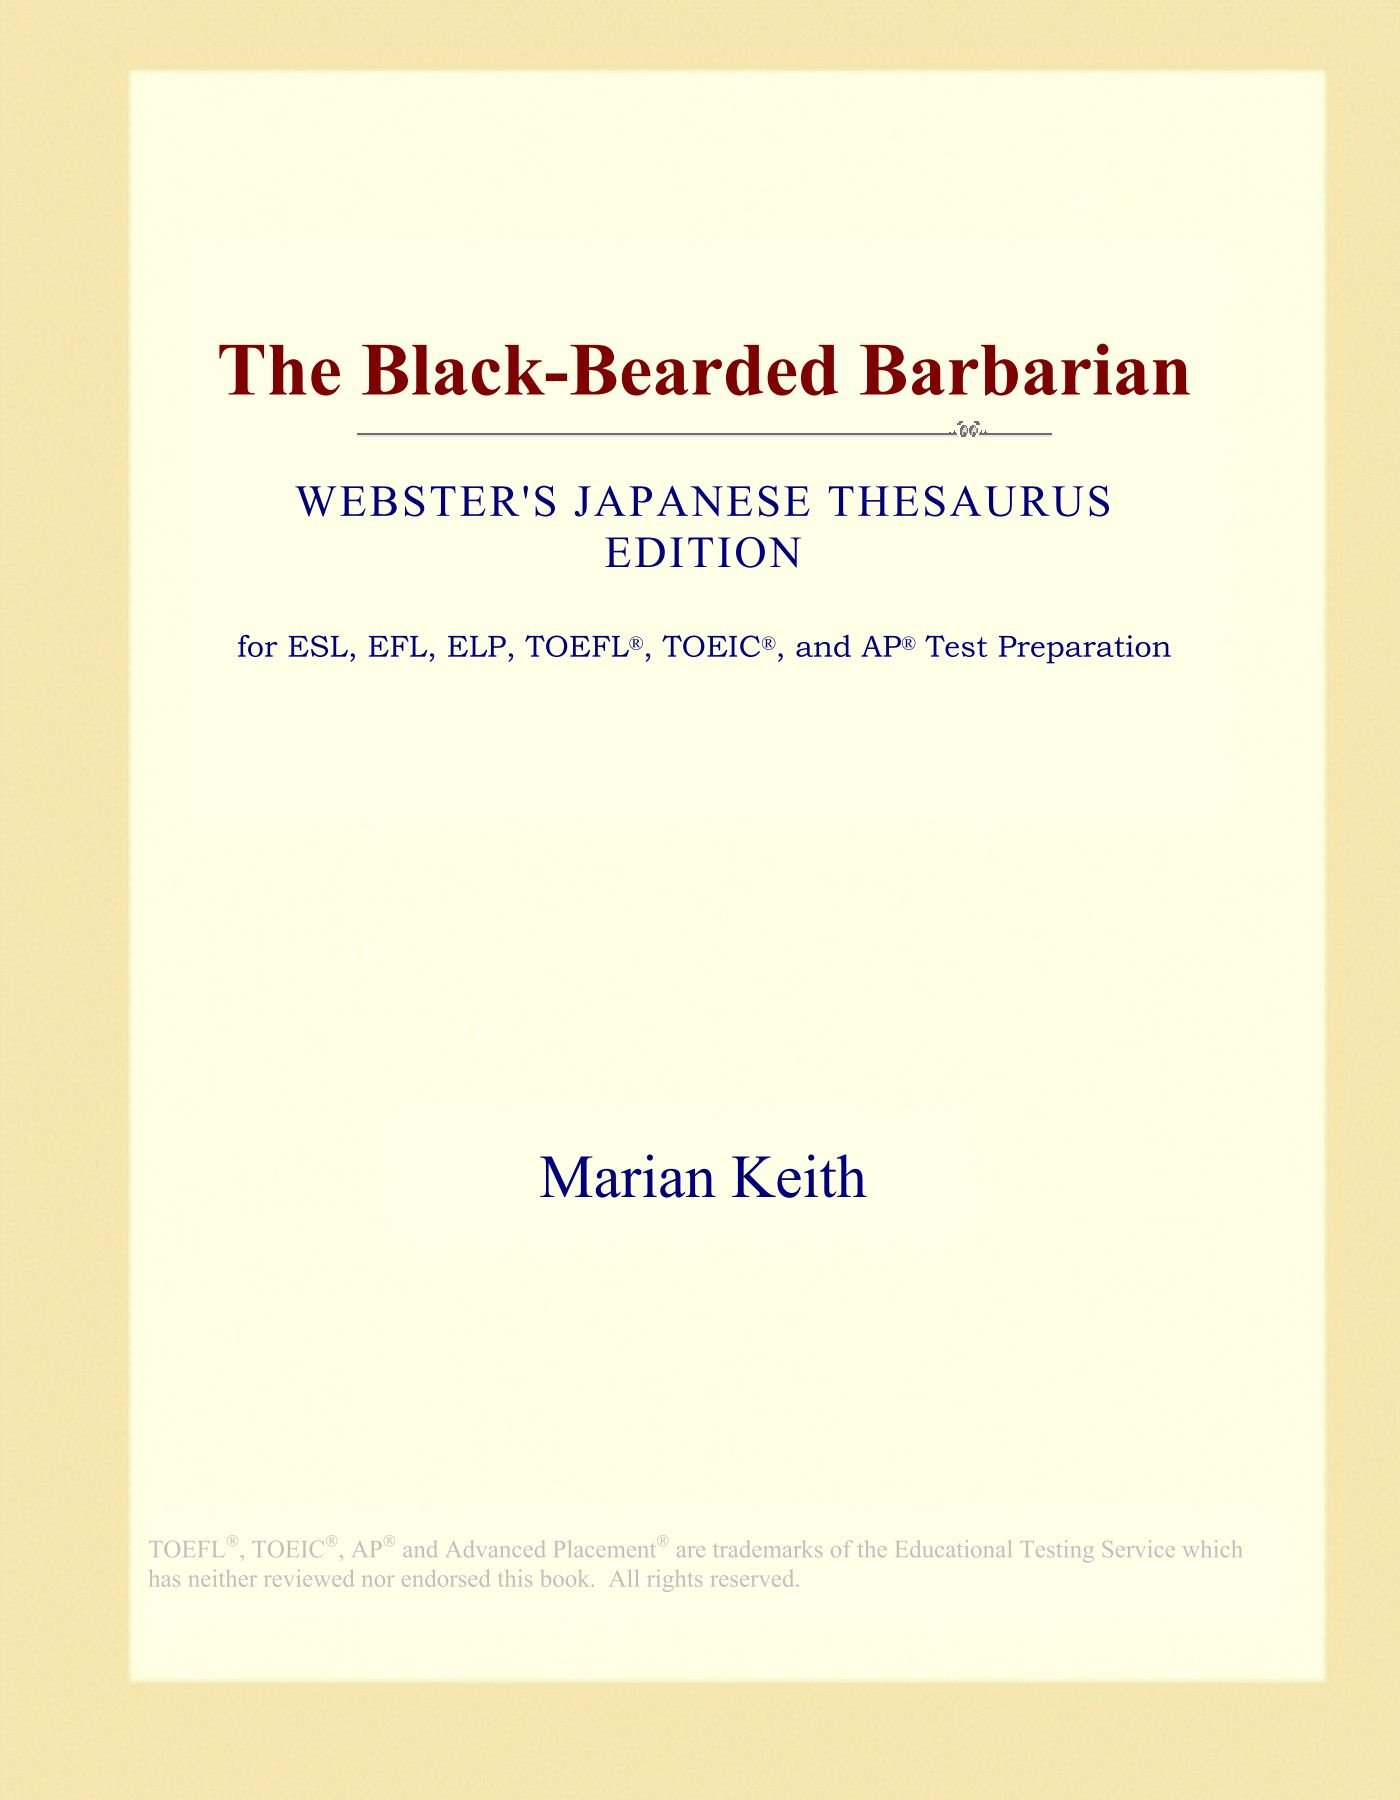 Download The Black-Bearded Barbarian (Webster's Japanese Thesaurus Edition) pdf